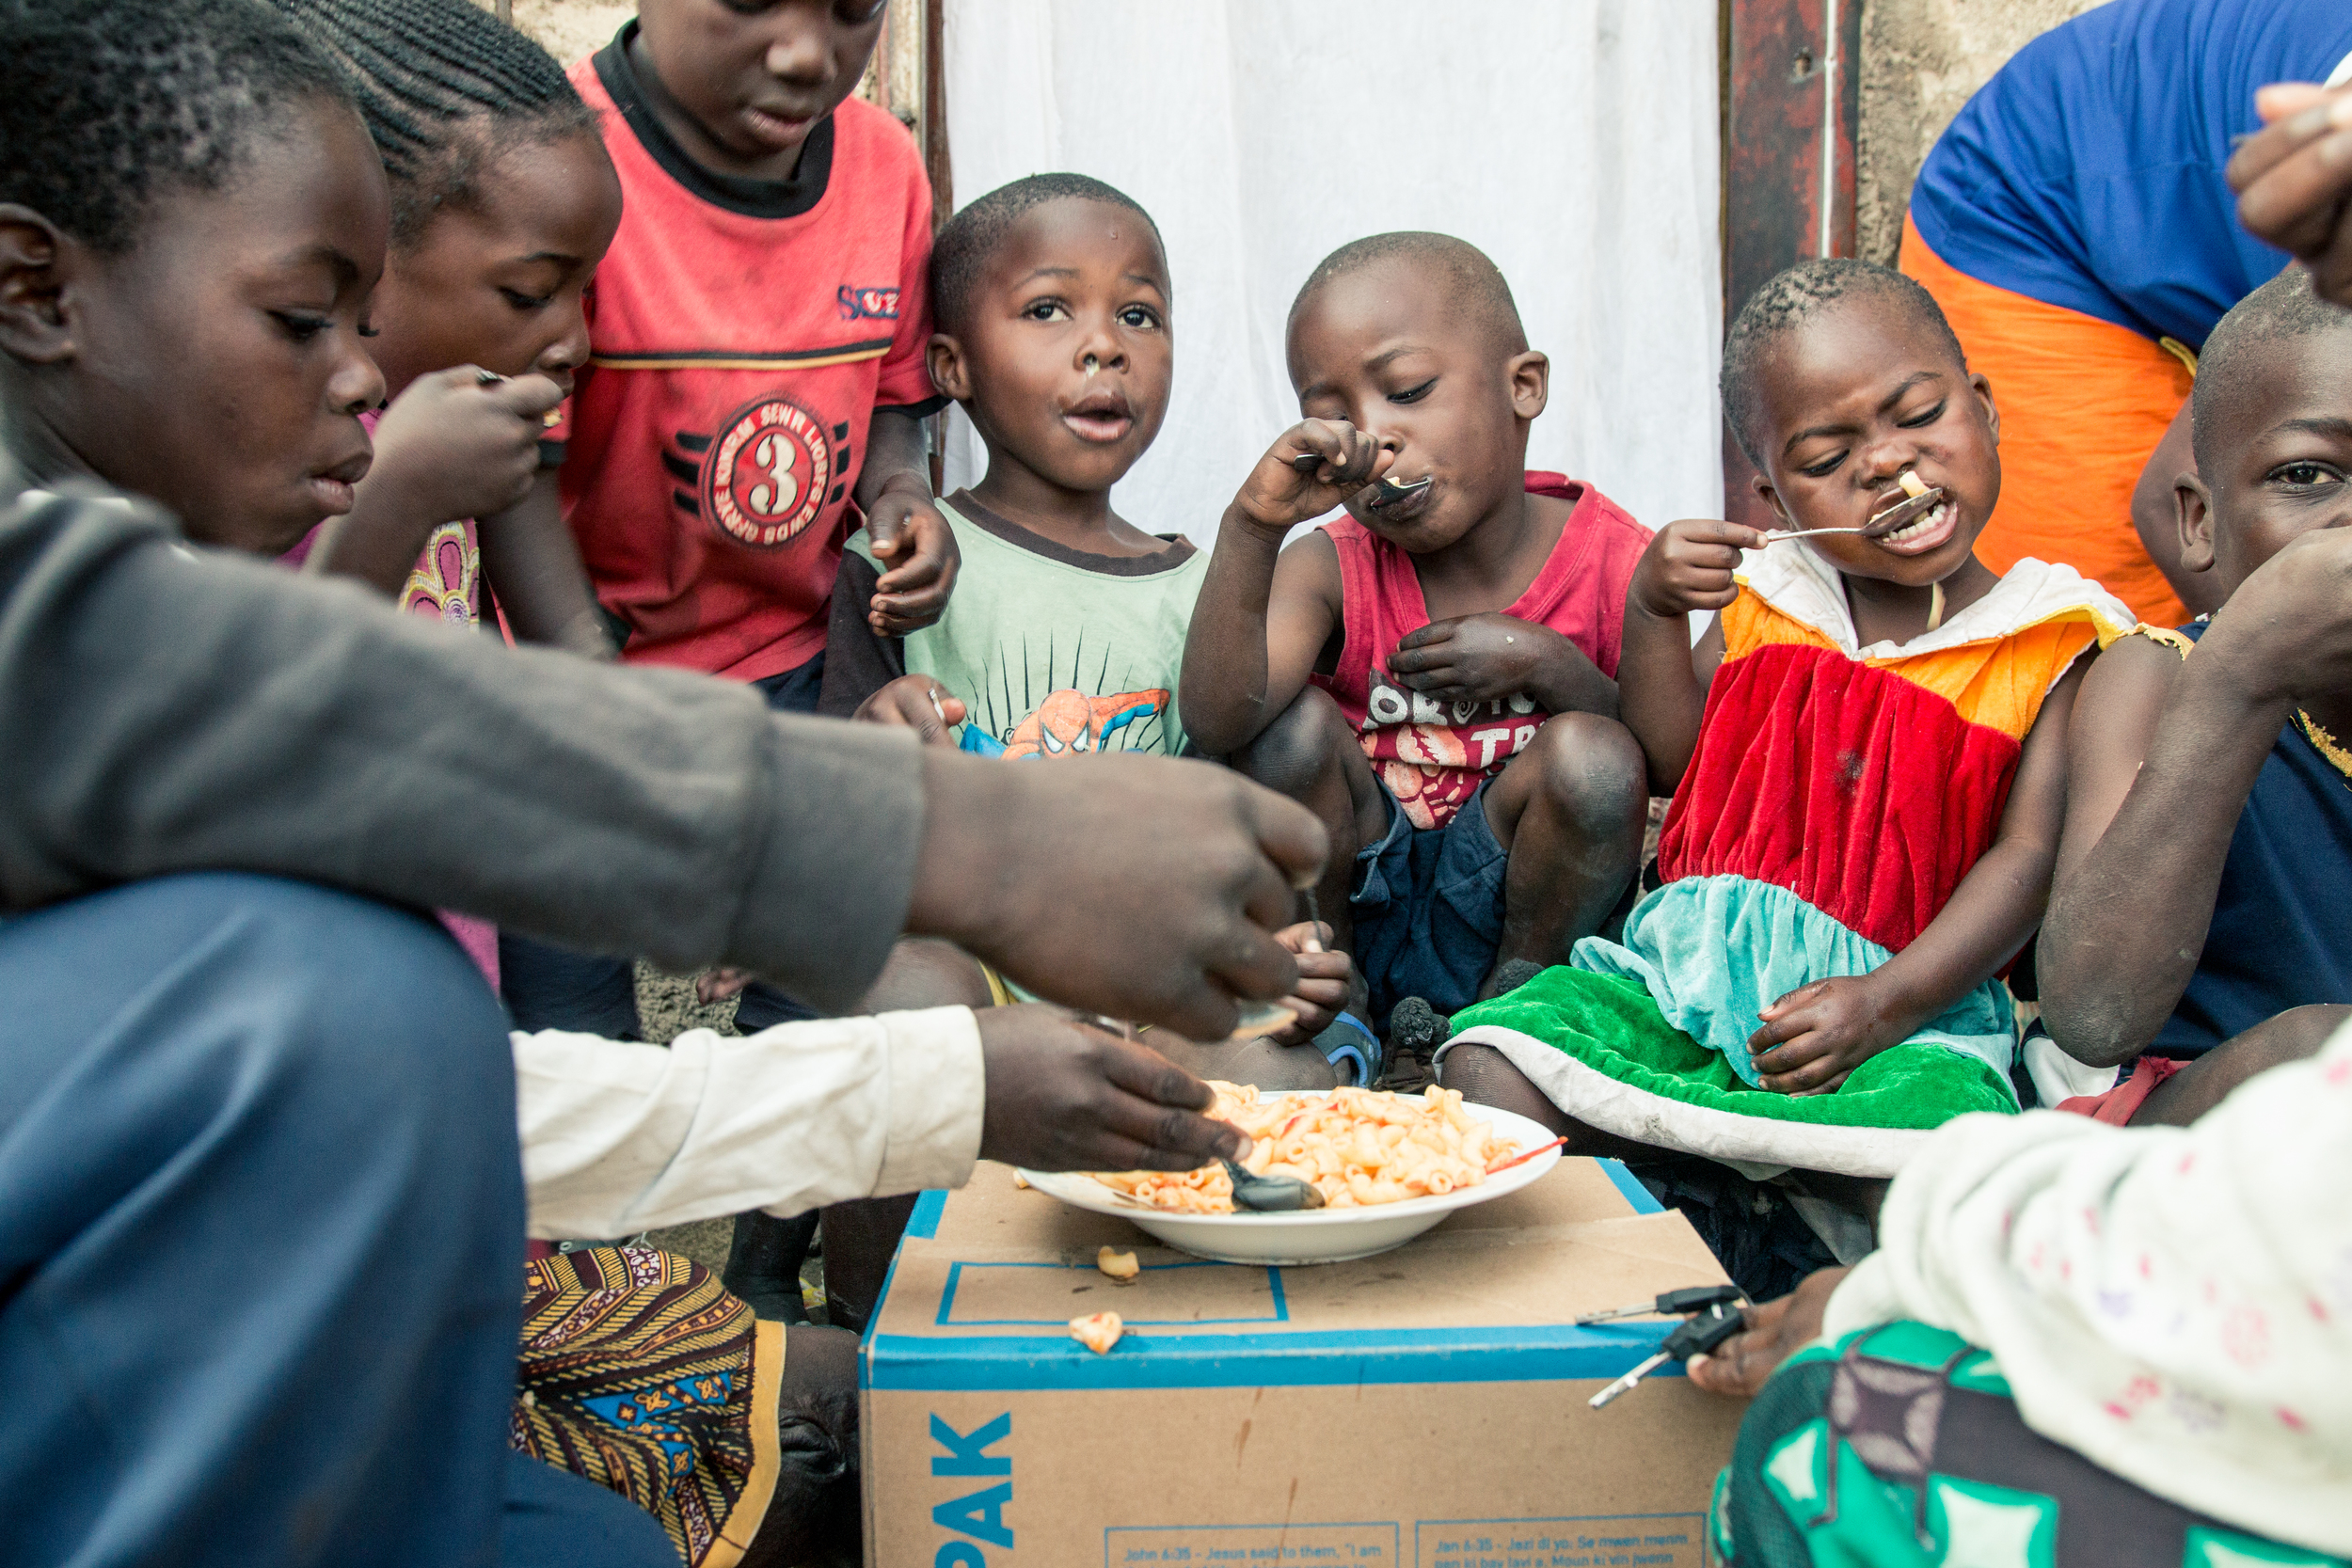 ZAMBIA: [Home Visit] I was reminded that generosity isn't contingent on wealth. People who have the least often give the most (Luke 21:1-4).Sarah prepared food and shared it with children from the community. We anticipated her feeding her family.. not her neighbors.